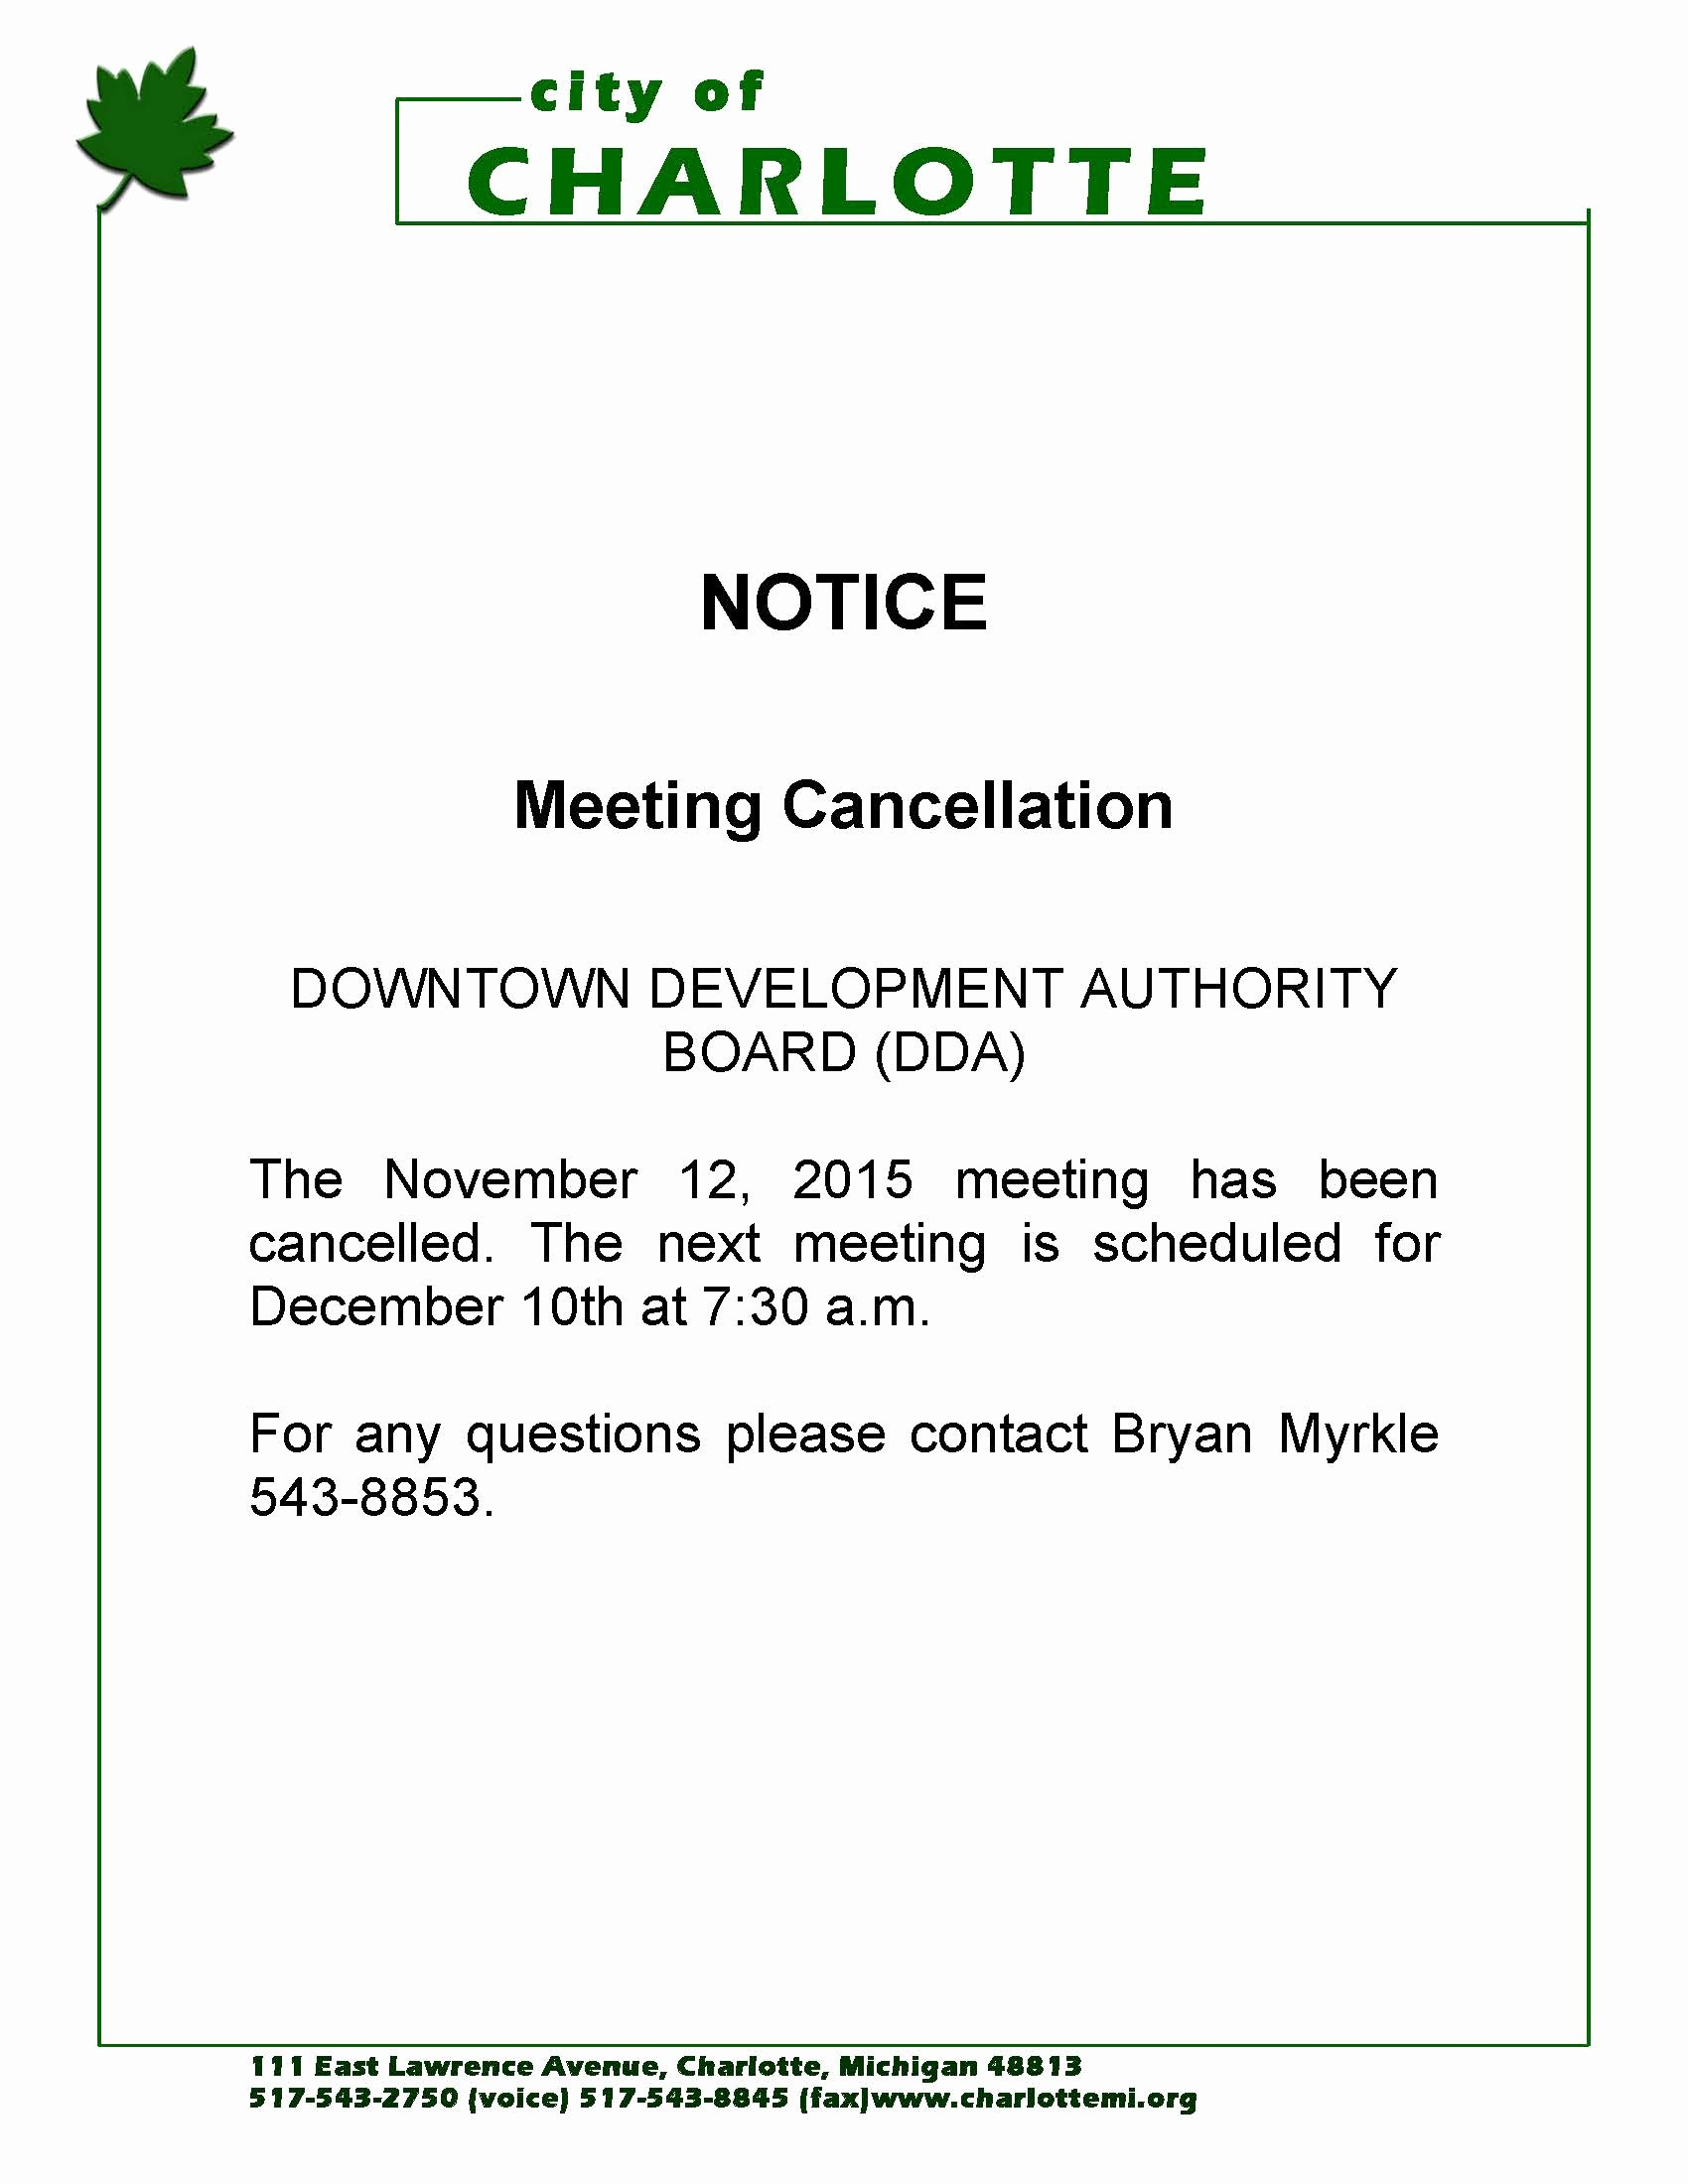 Notice Of Board Meeting Template Inspirational Notice Of Meeting Cancellation for the Downtown